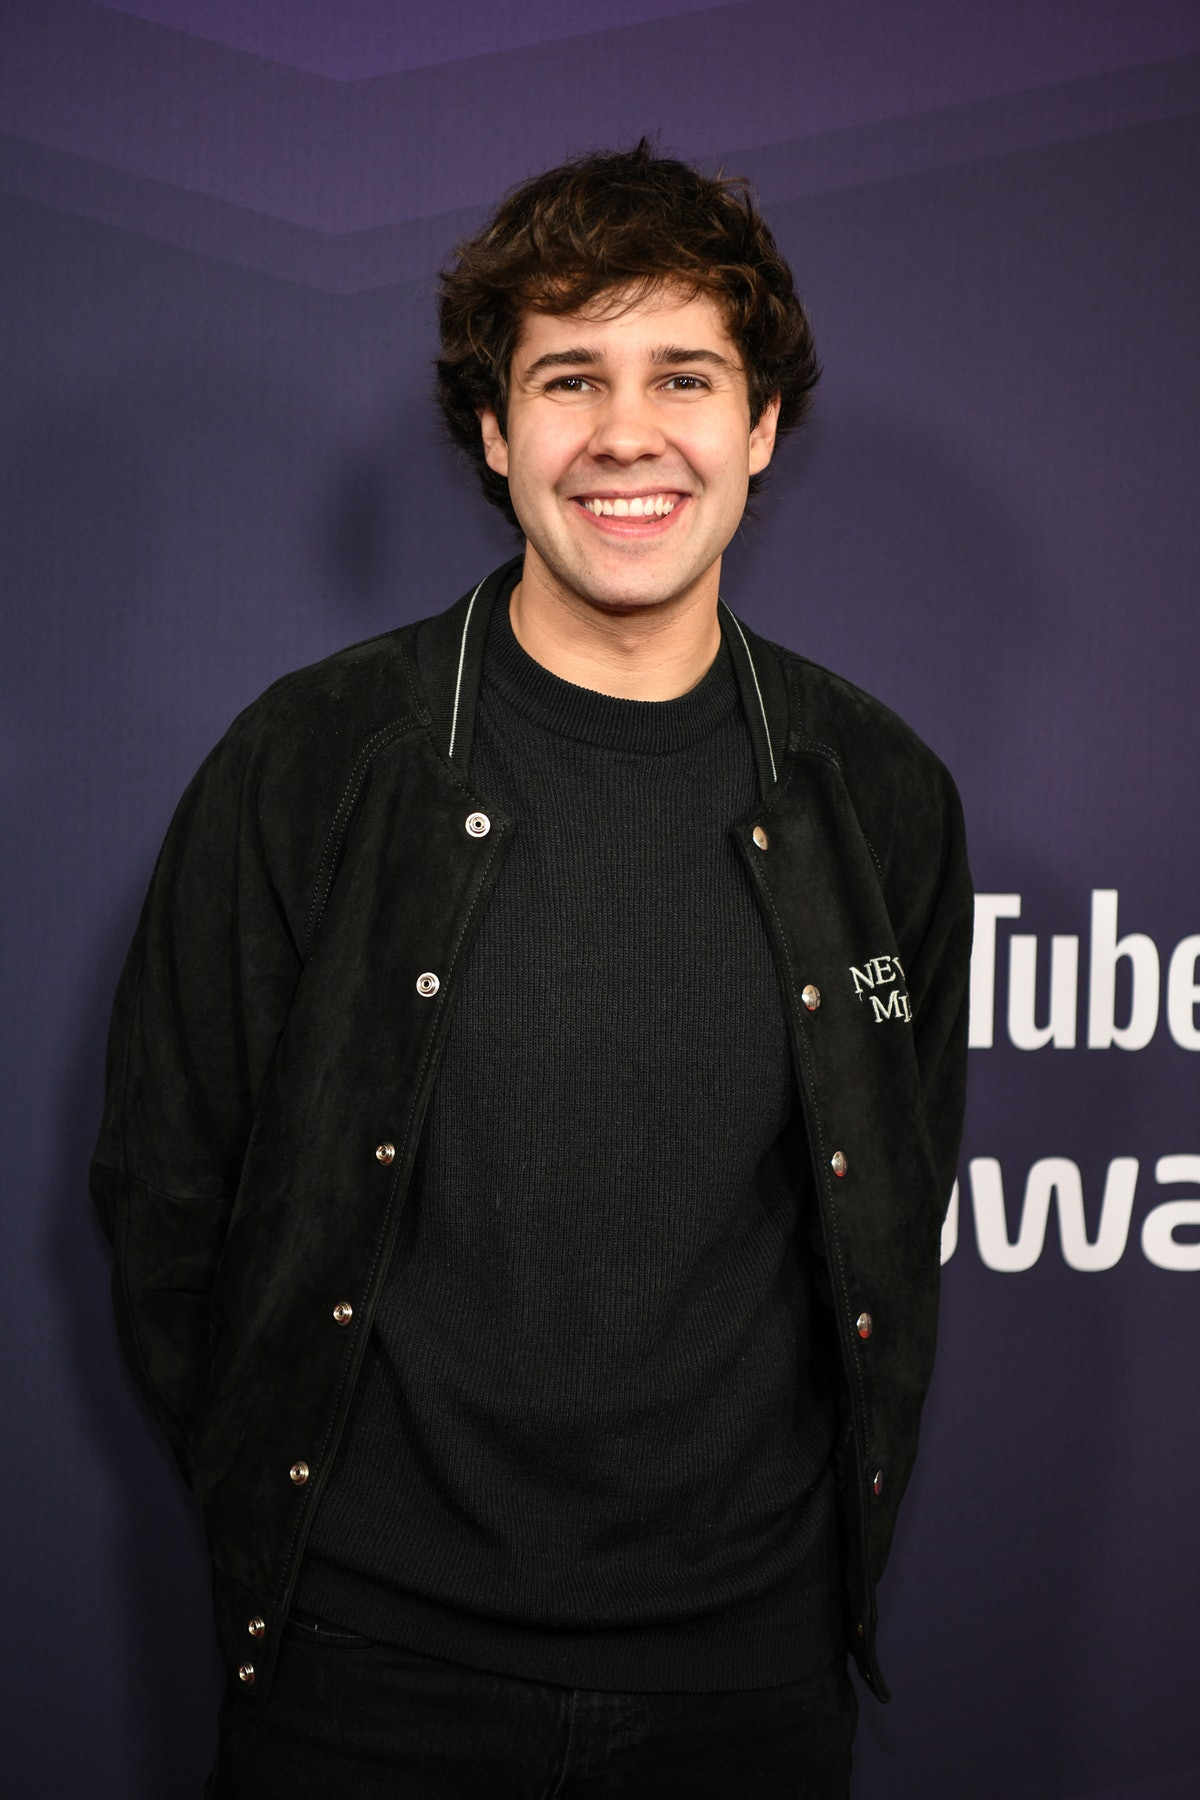 David Dobrik attends an event for YouTube.